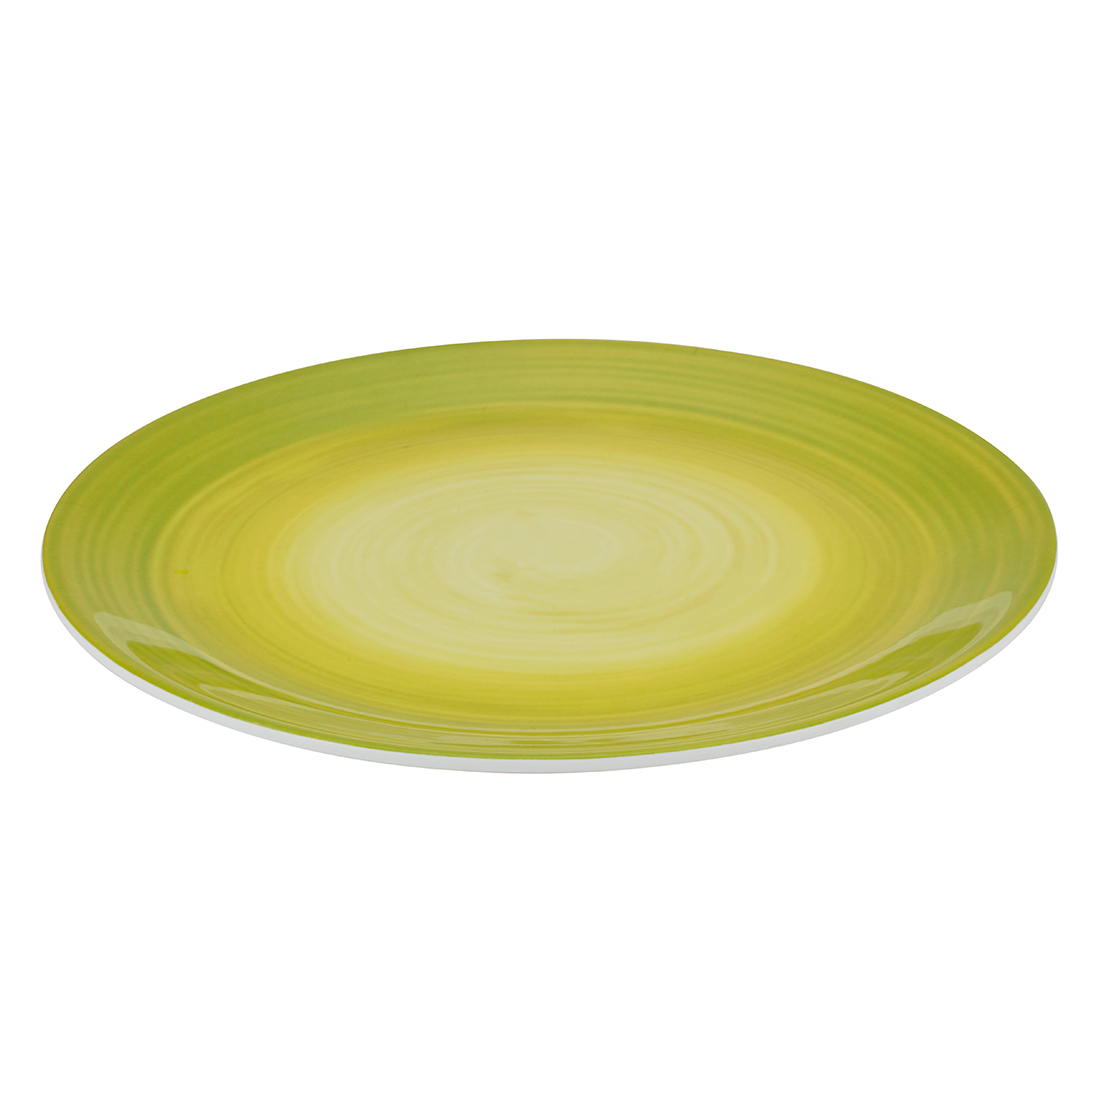 Urmi Lime Swirl Buffet Plate Food Grade Melamine Plates in Multi Color Colour by Living Essence